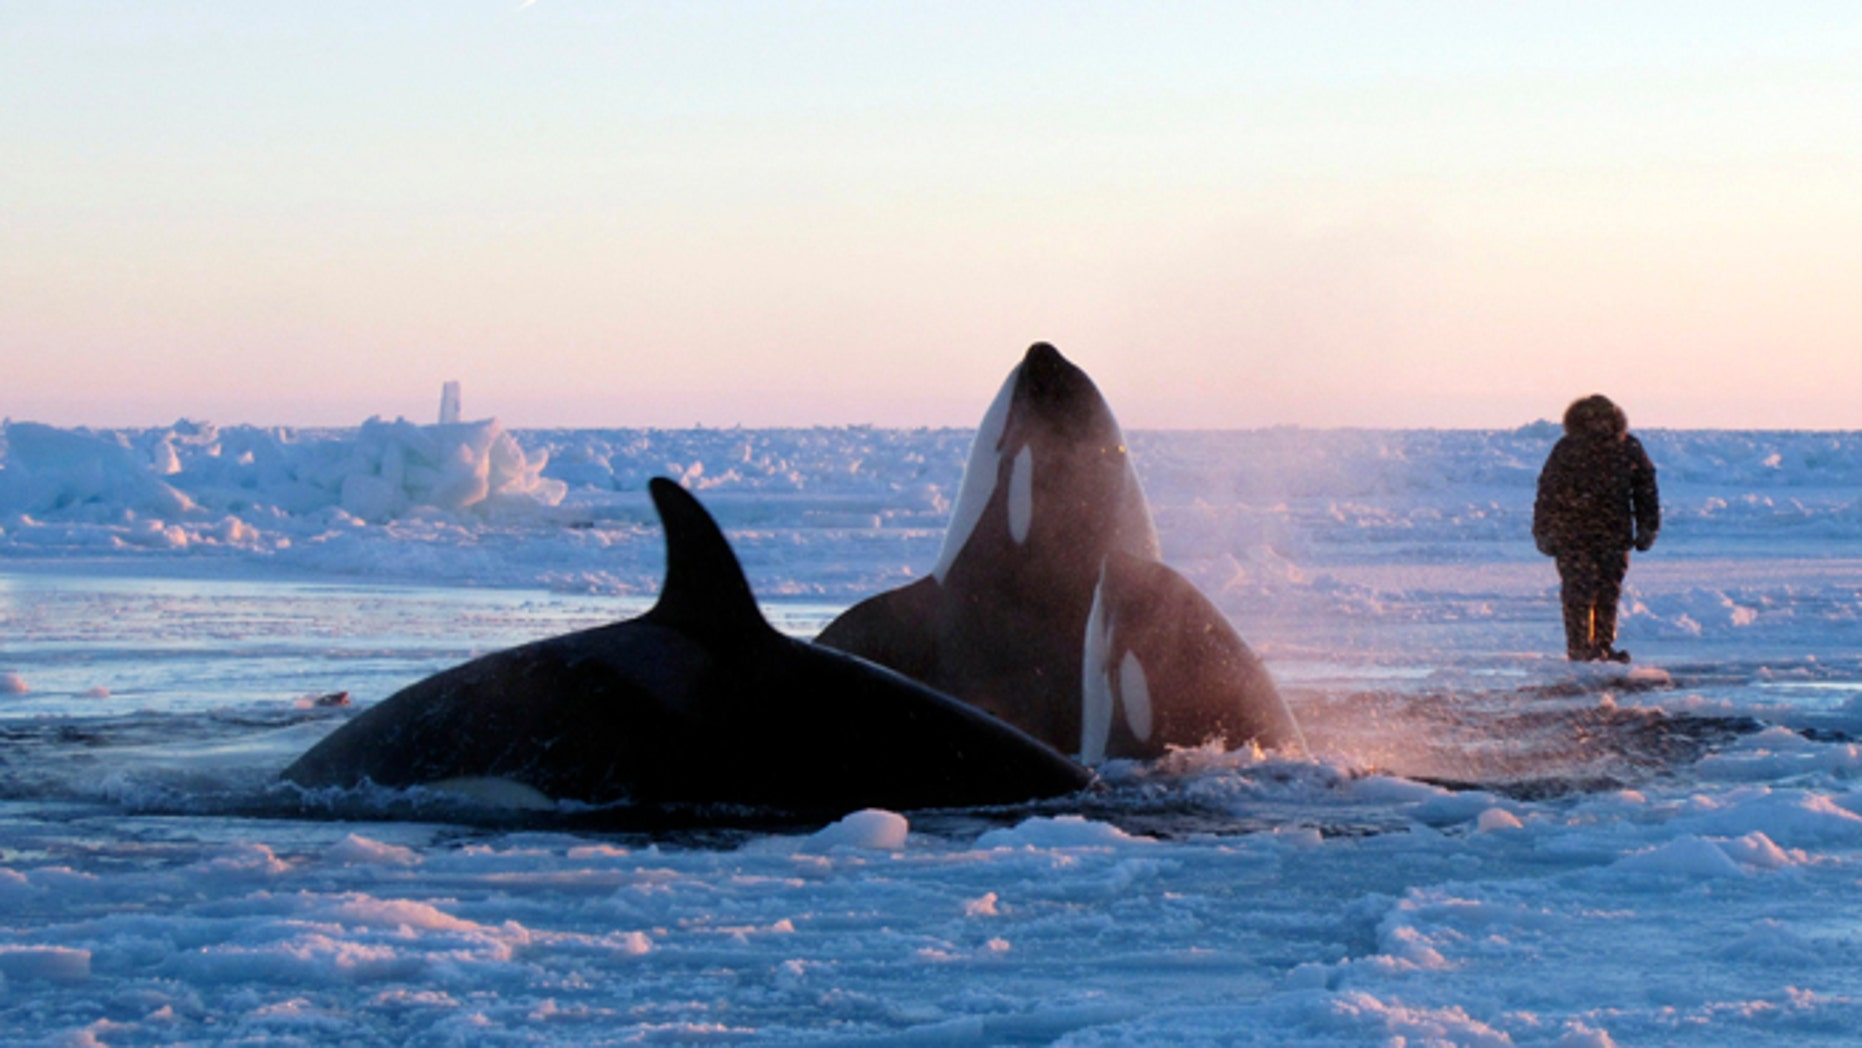 Jan. 8, 2013: In this photo provided by Marina Lacasse, killer whales surface through a small hole in the ice near Inukjuak, in Northern Quebec.